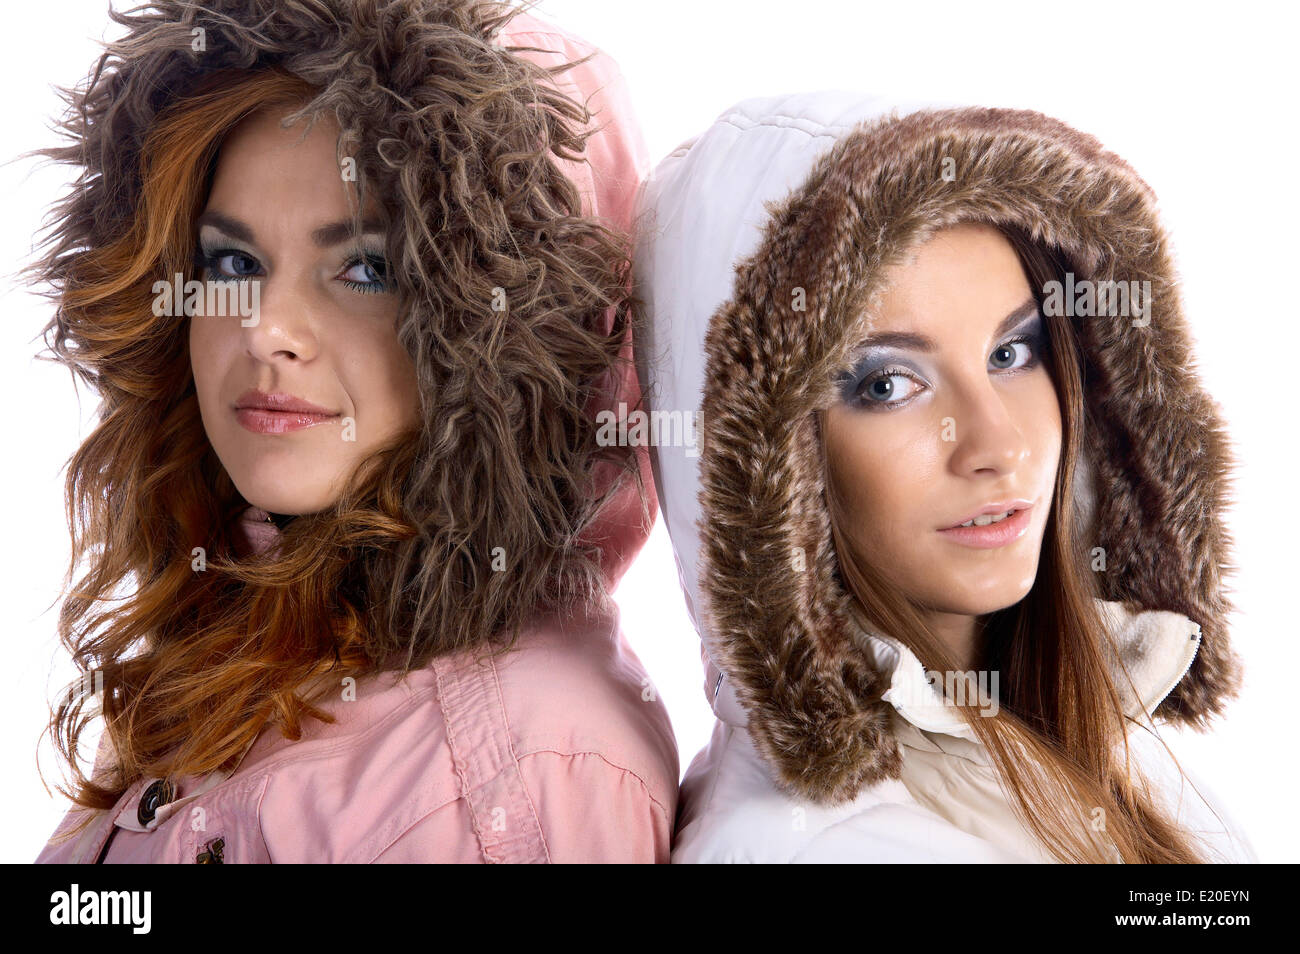 models in warm clothes - Stock Image